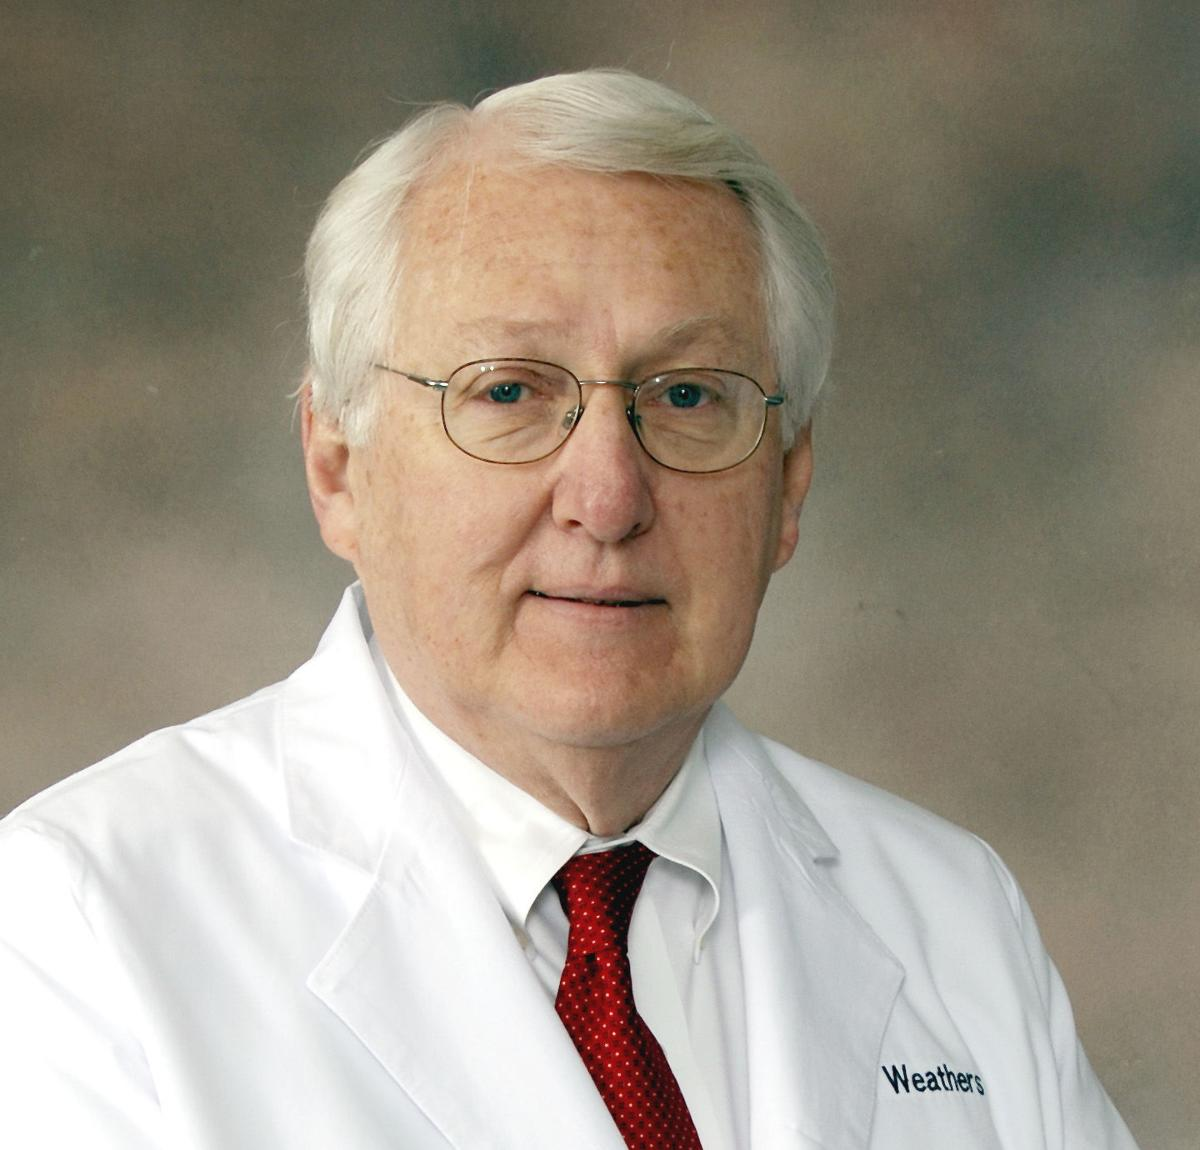 Dr. Arden Weathers